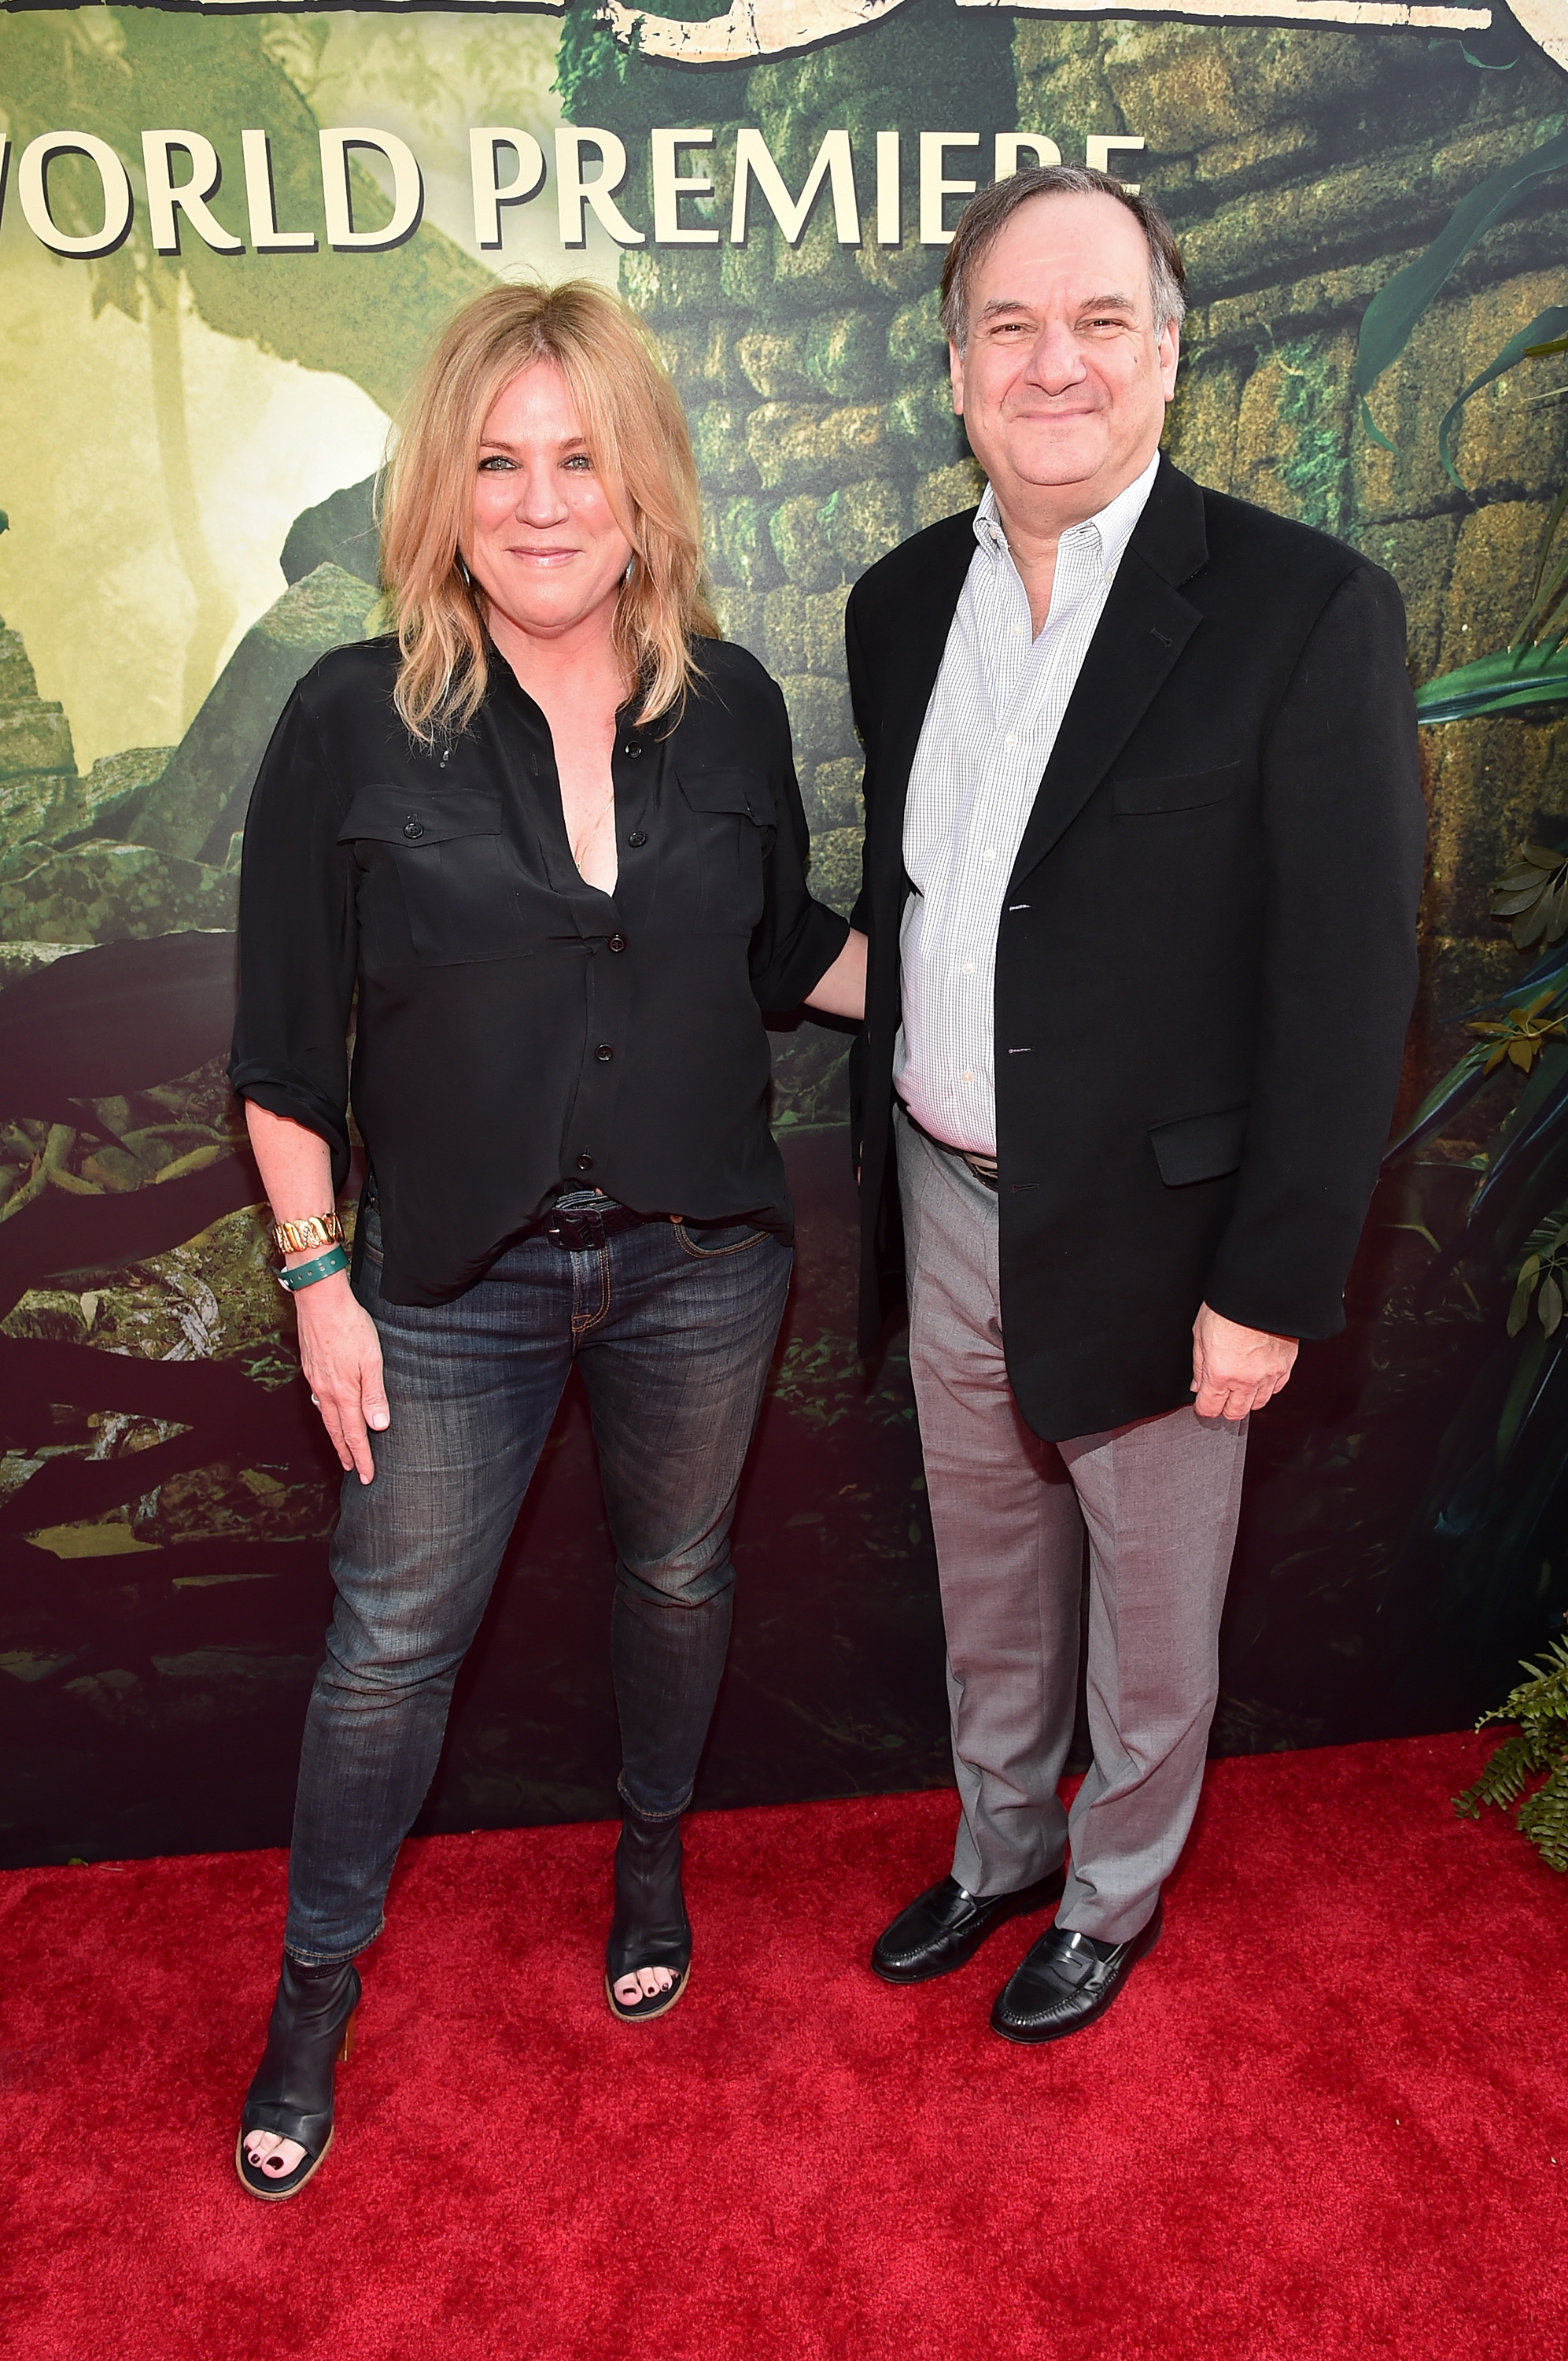 """HOLLYWOOD, CALIFORNIA - APRIL 04:  Executive producer Molly Allen and visual effects supervisor Robert Legato attends The World Premiere of Disney's """"THE JUNGLE BOOK"""" at the El Capitan Theatre on April 4, 2016 in Hollywood, California.  (Photo by Alberto E. Rodriguez/Getty Images for Disney) *** Local Caption *** Robert Legato; Molly Allen"""